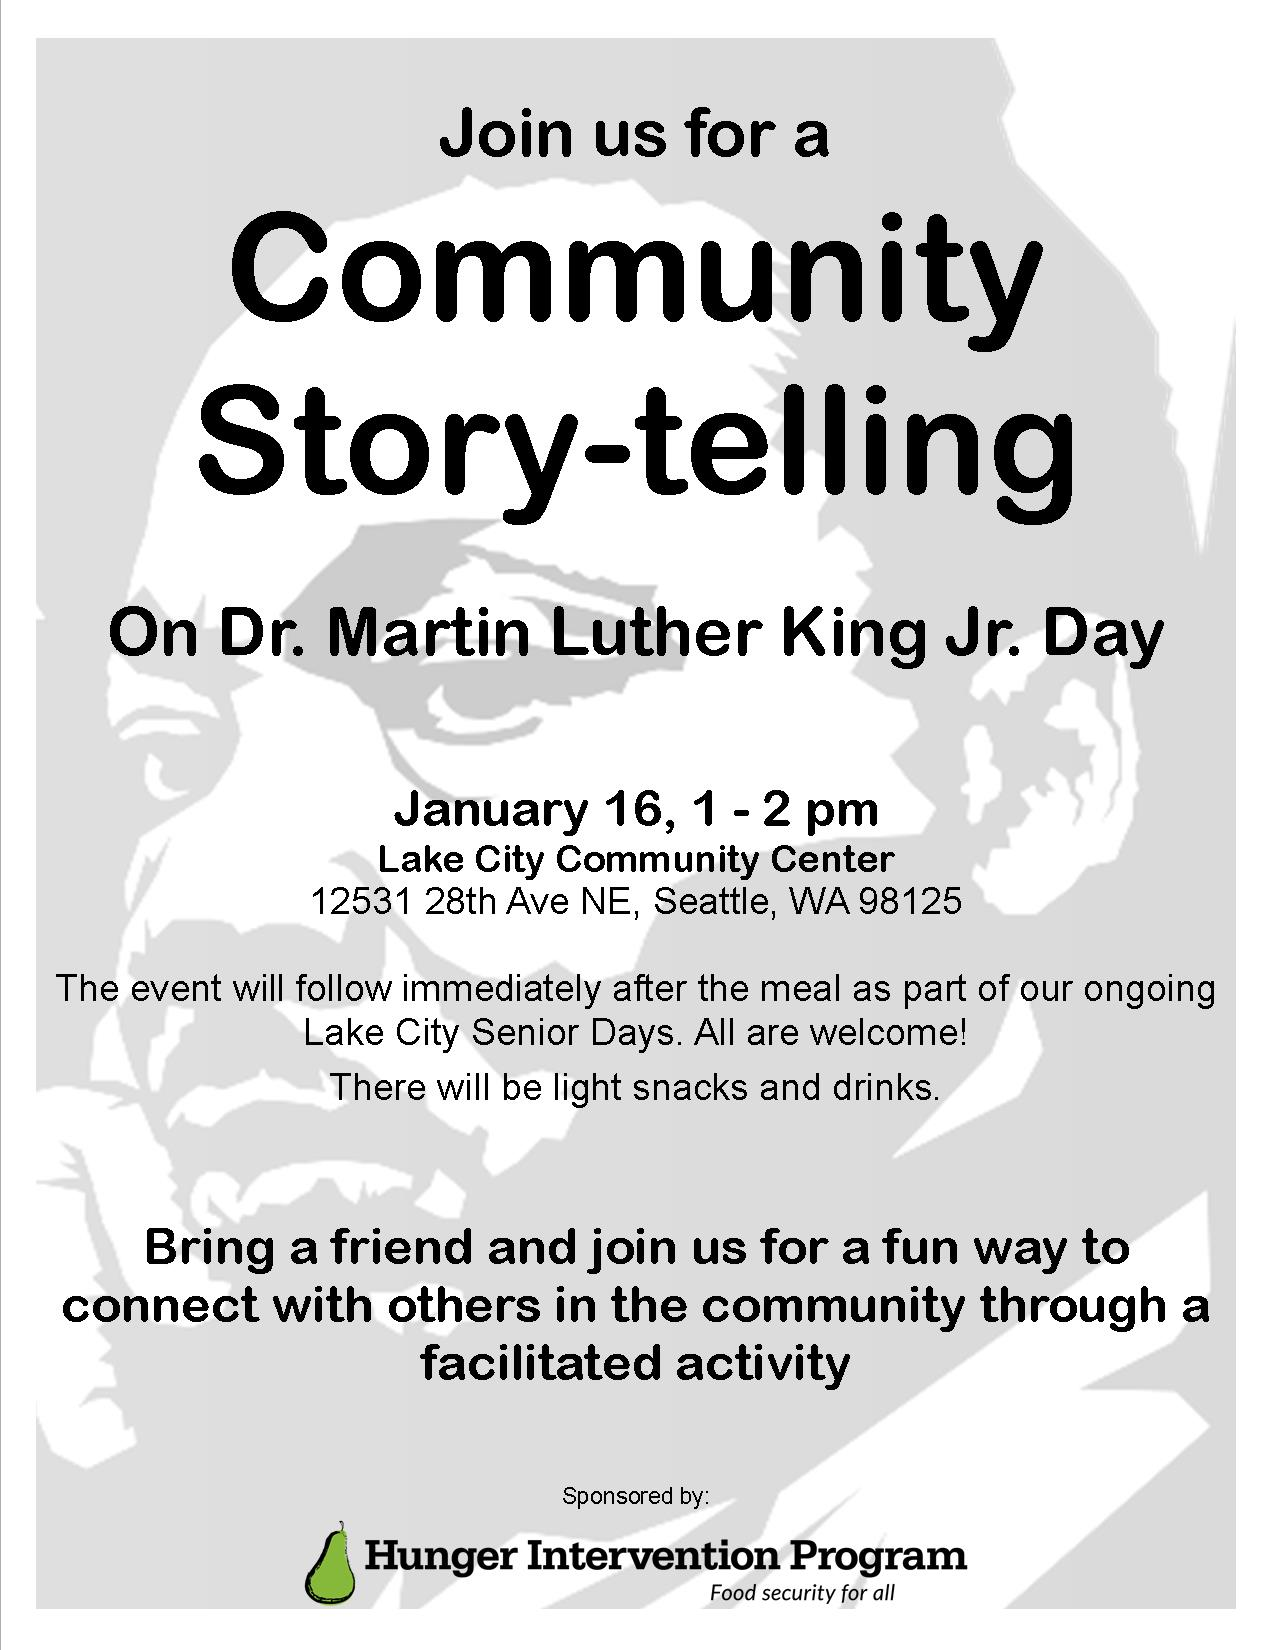 mlk-day-2017-community-story-telling-flyer-one-pager